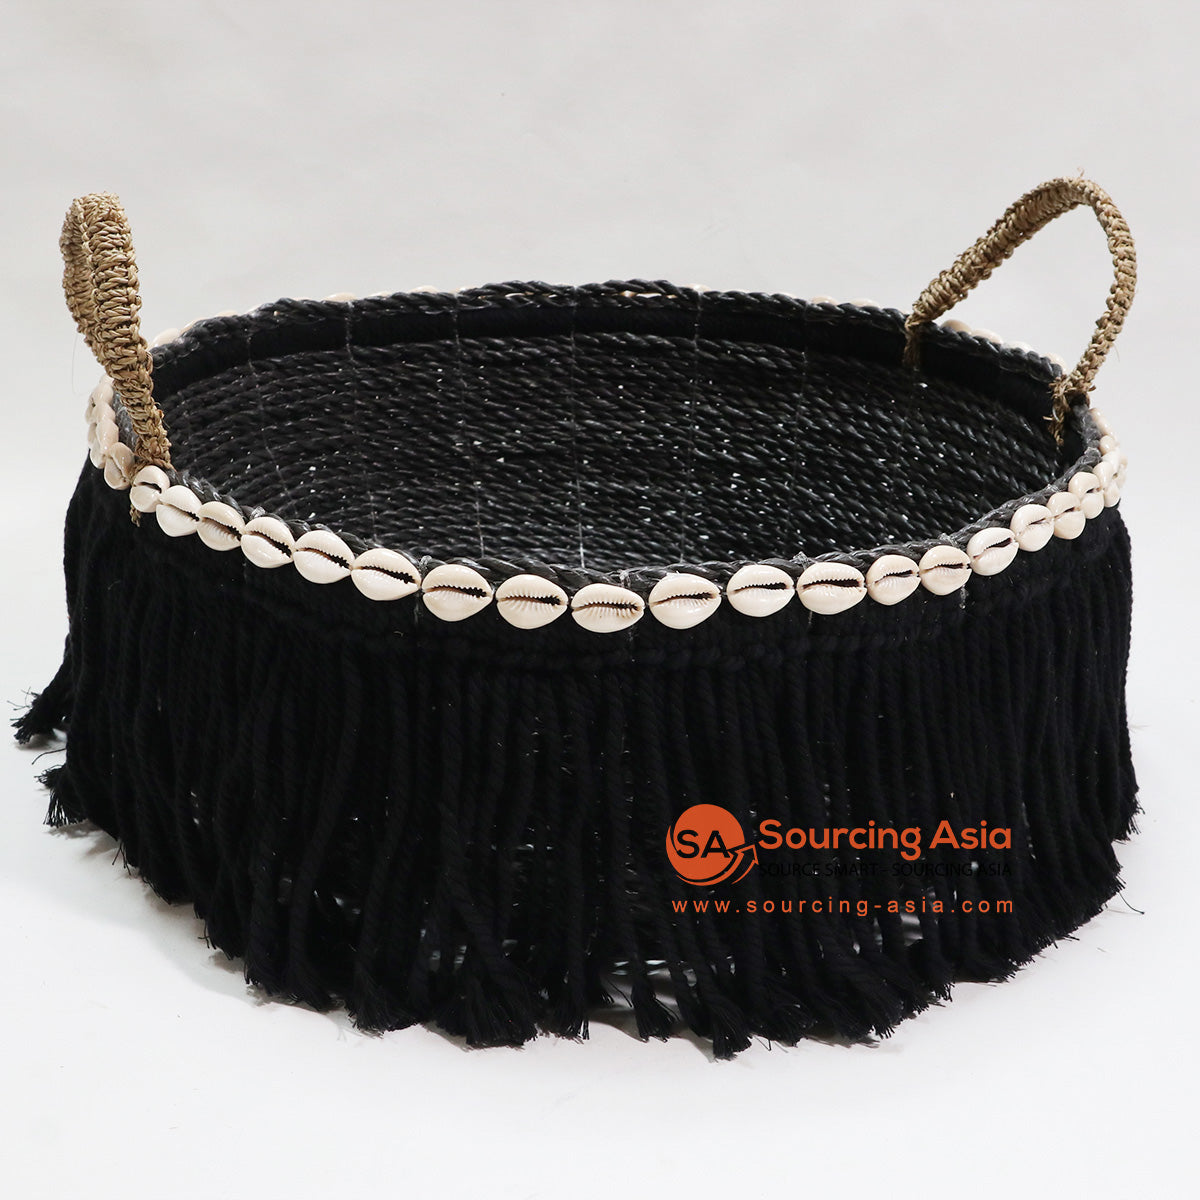 HBSC041 SEA GRASS BLACK TRINKET BASKET WITH SHELLS AND FRINGE